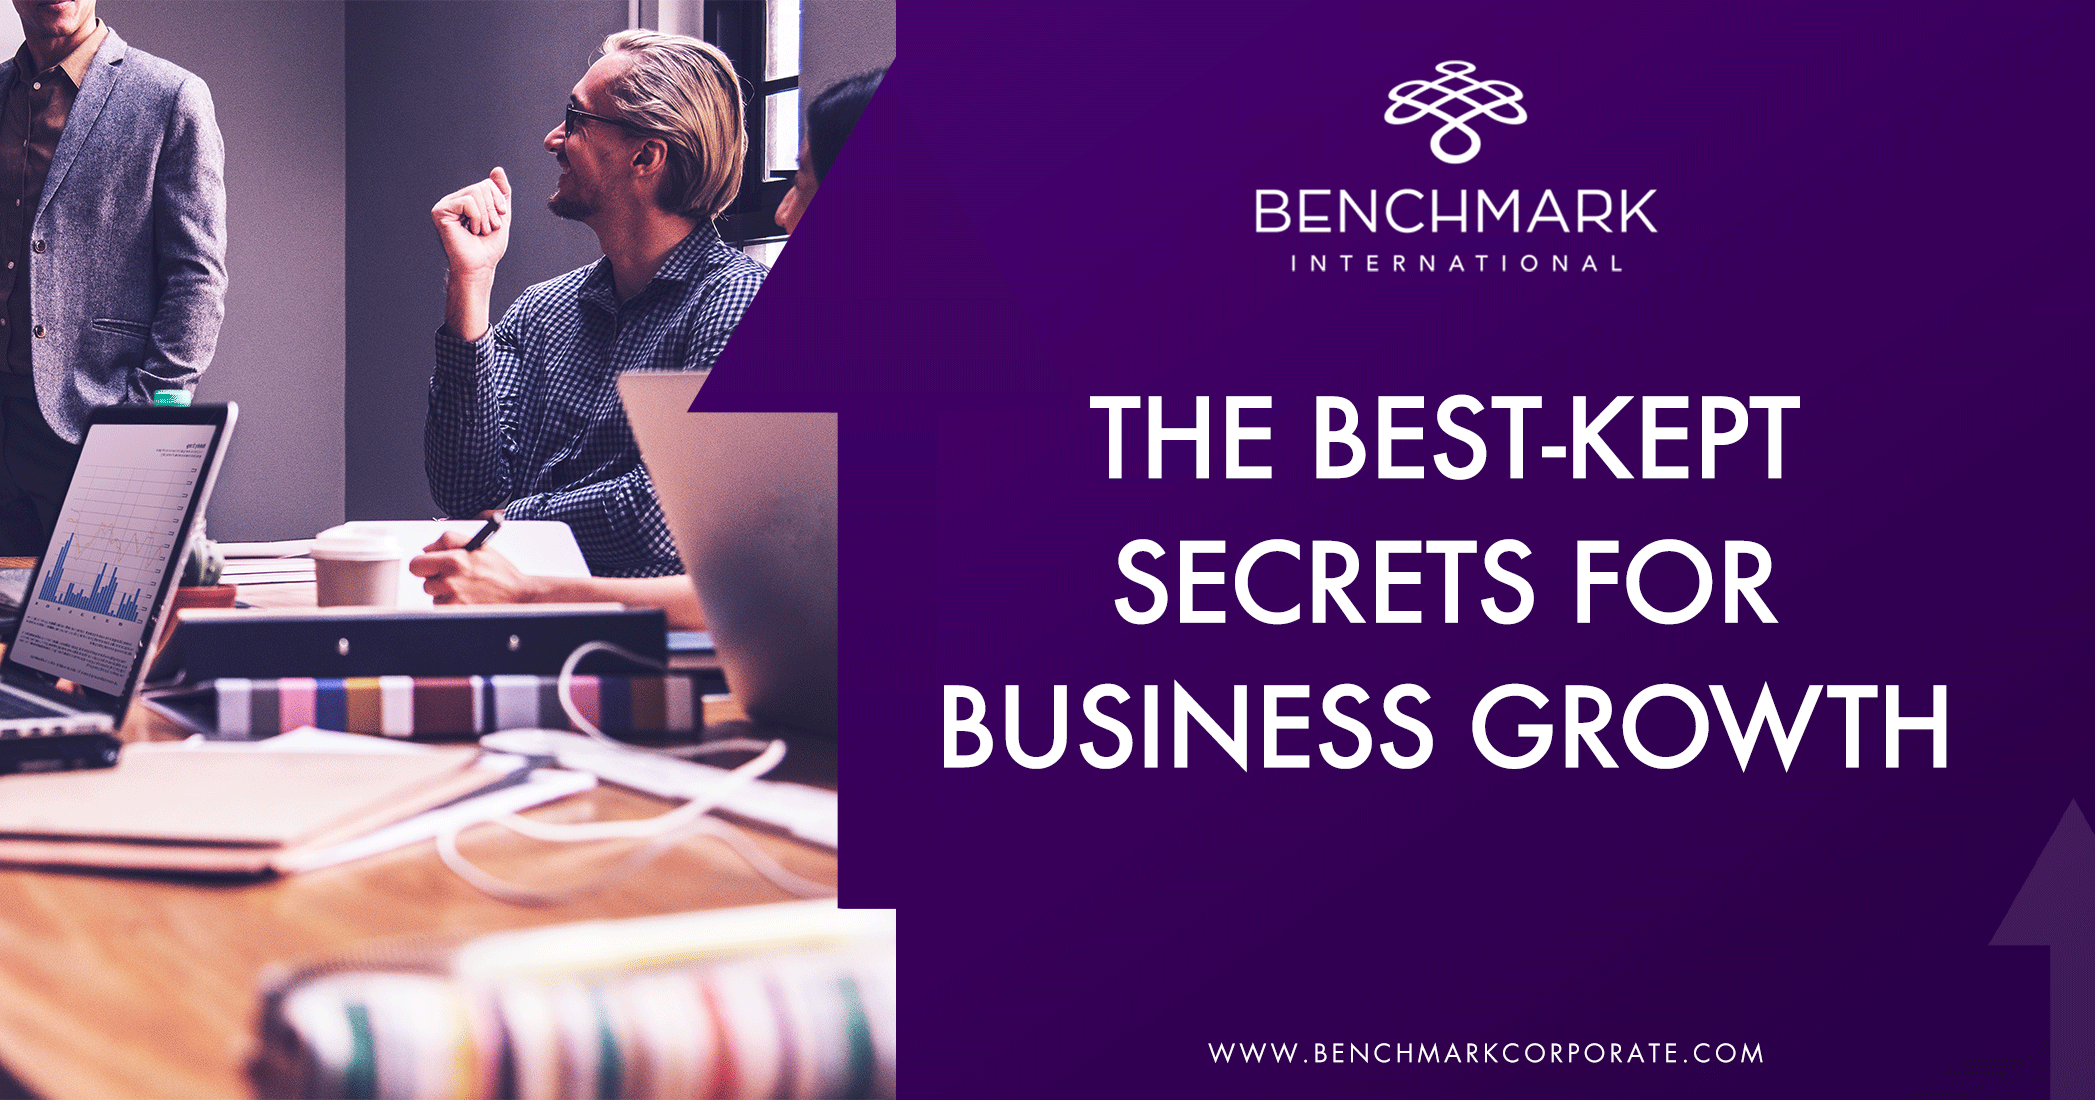 The Best-Kept Secrets for Business Growth